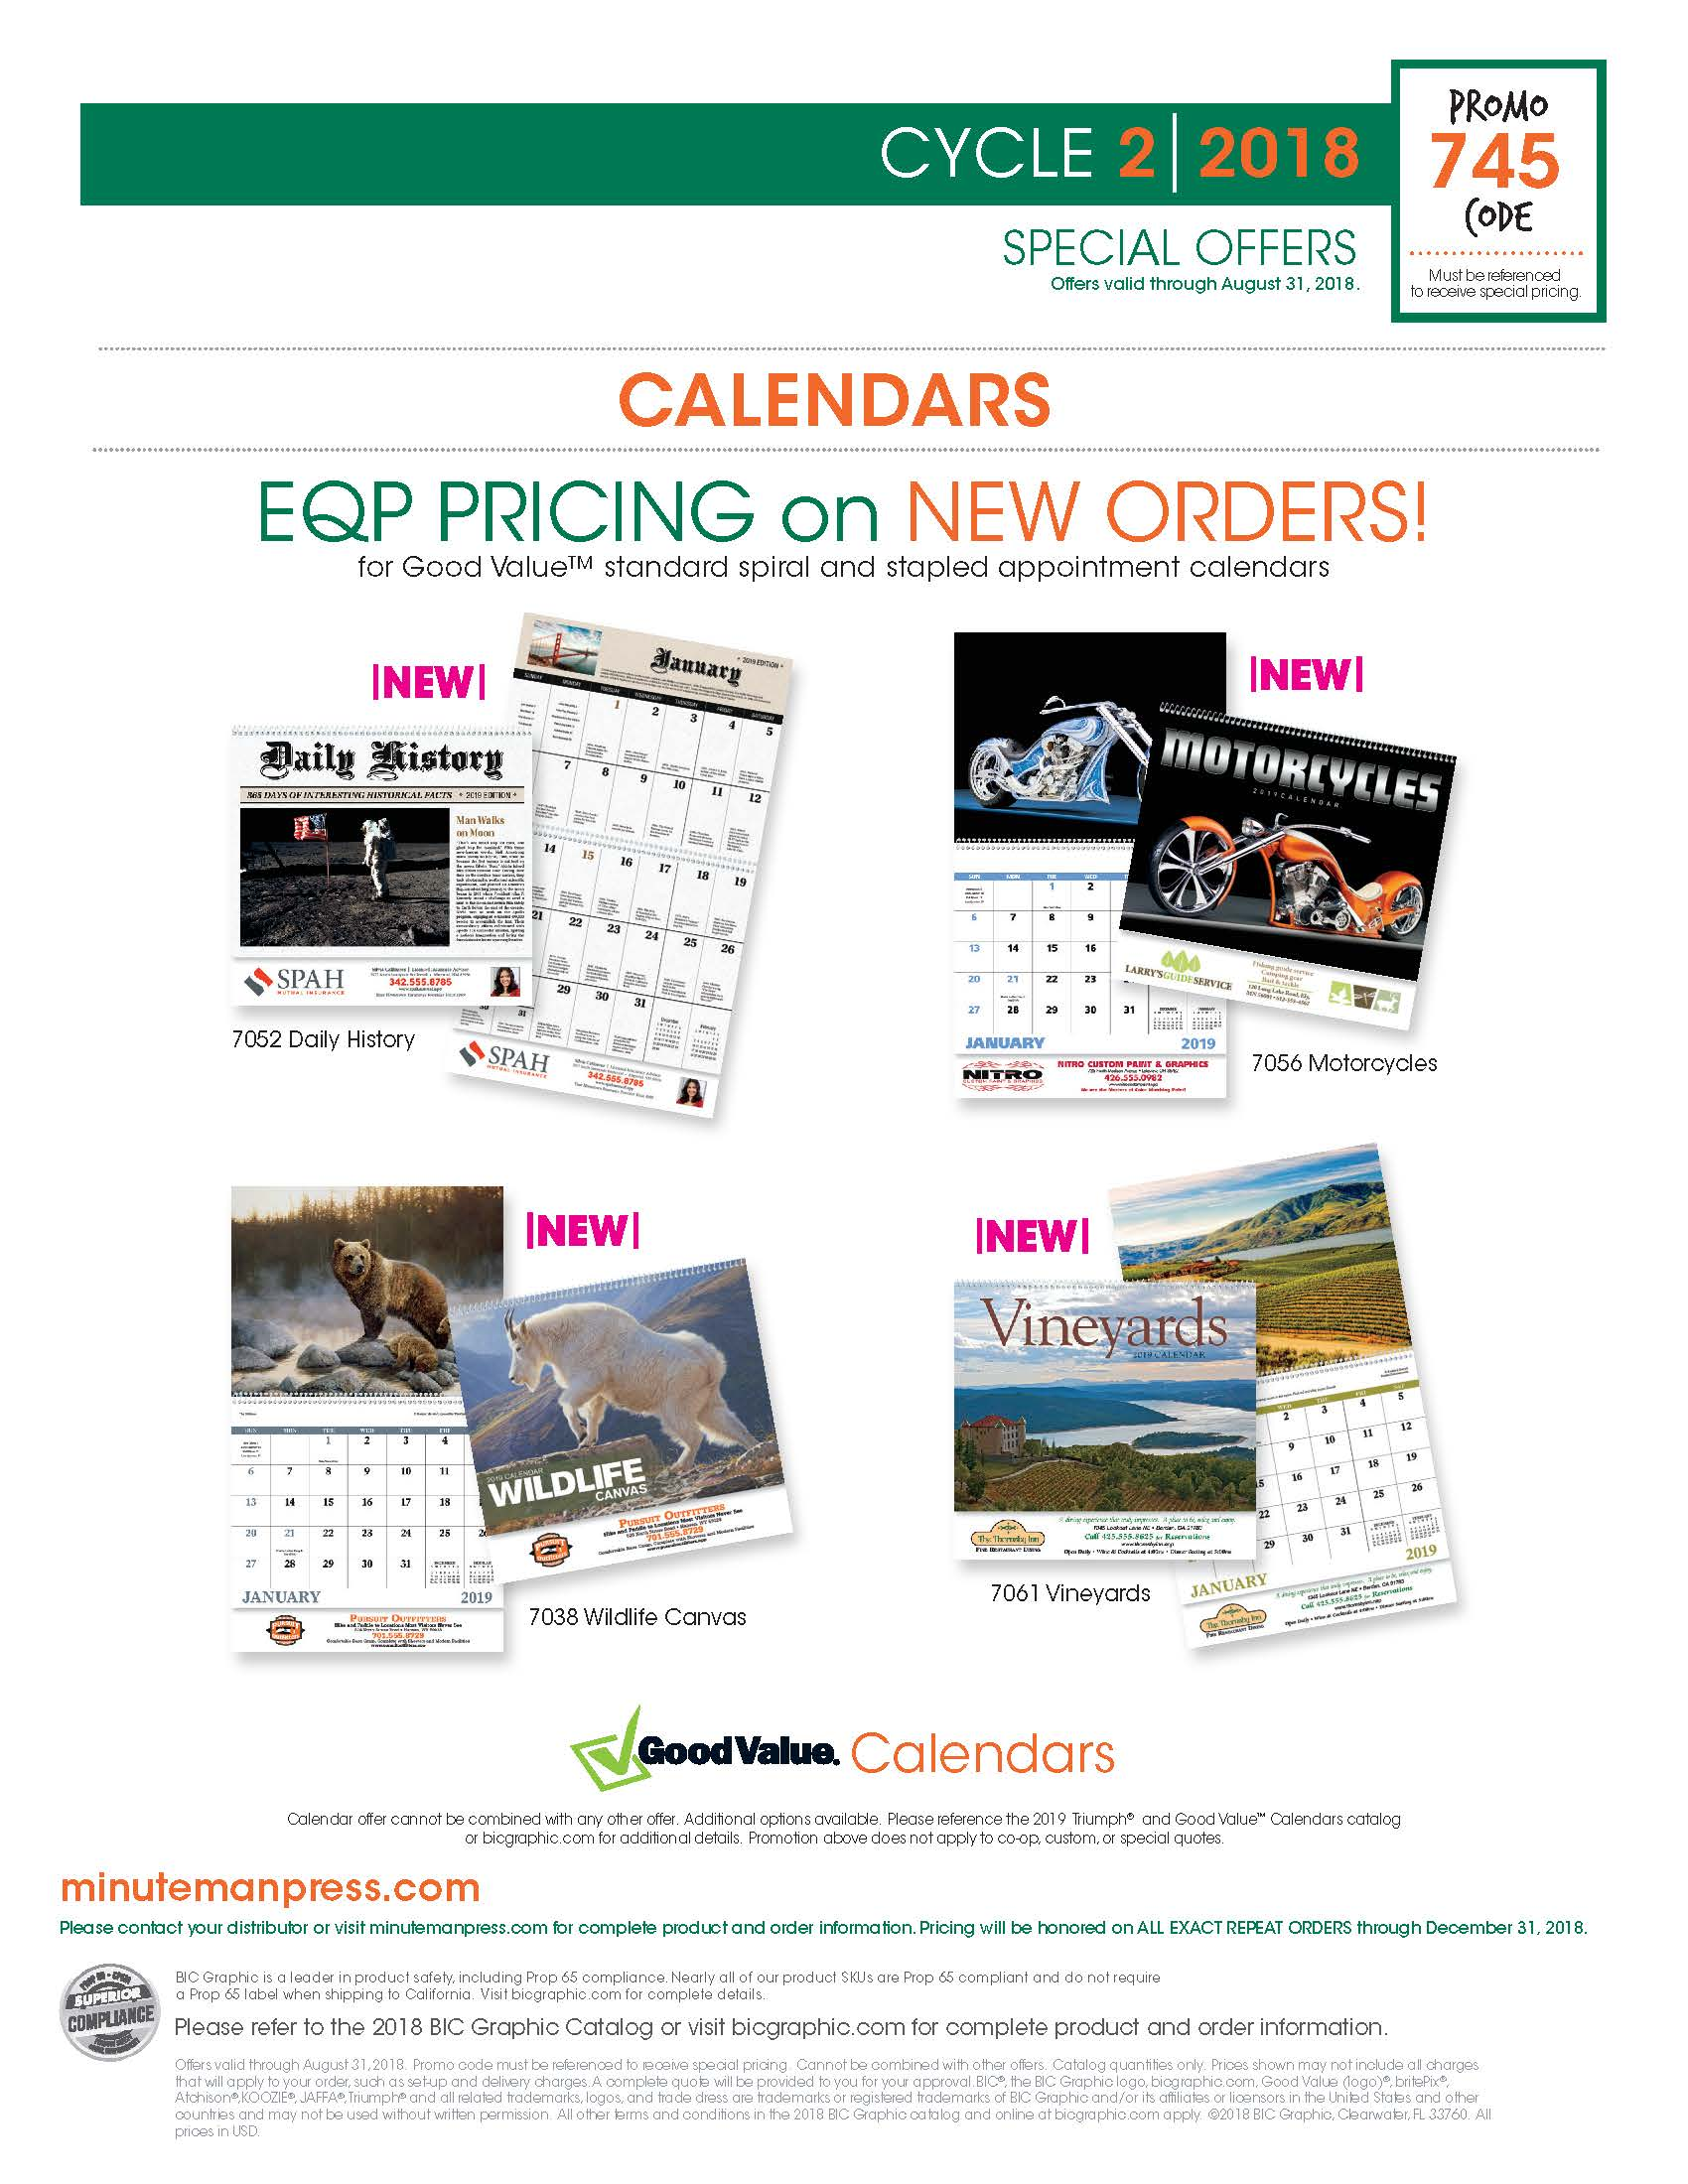 2018 - Cycle 2 Flyer - US - MP Version Folder_Page_11